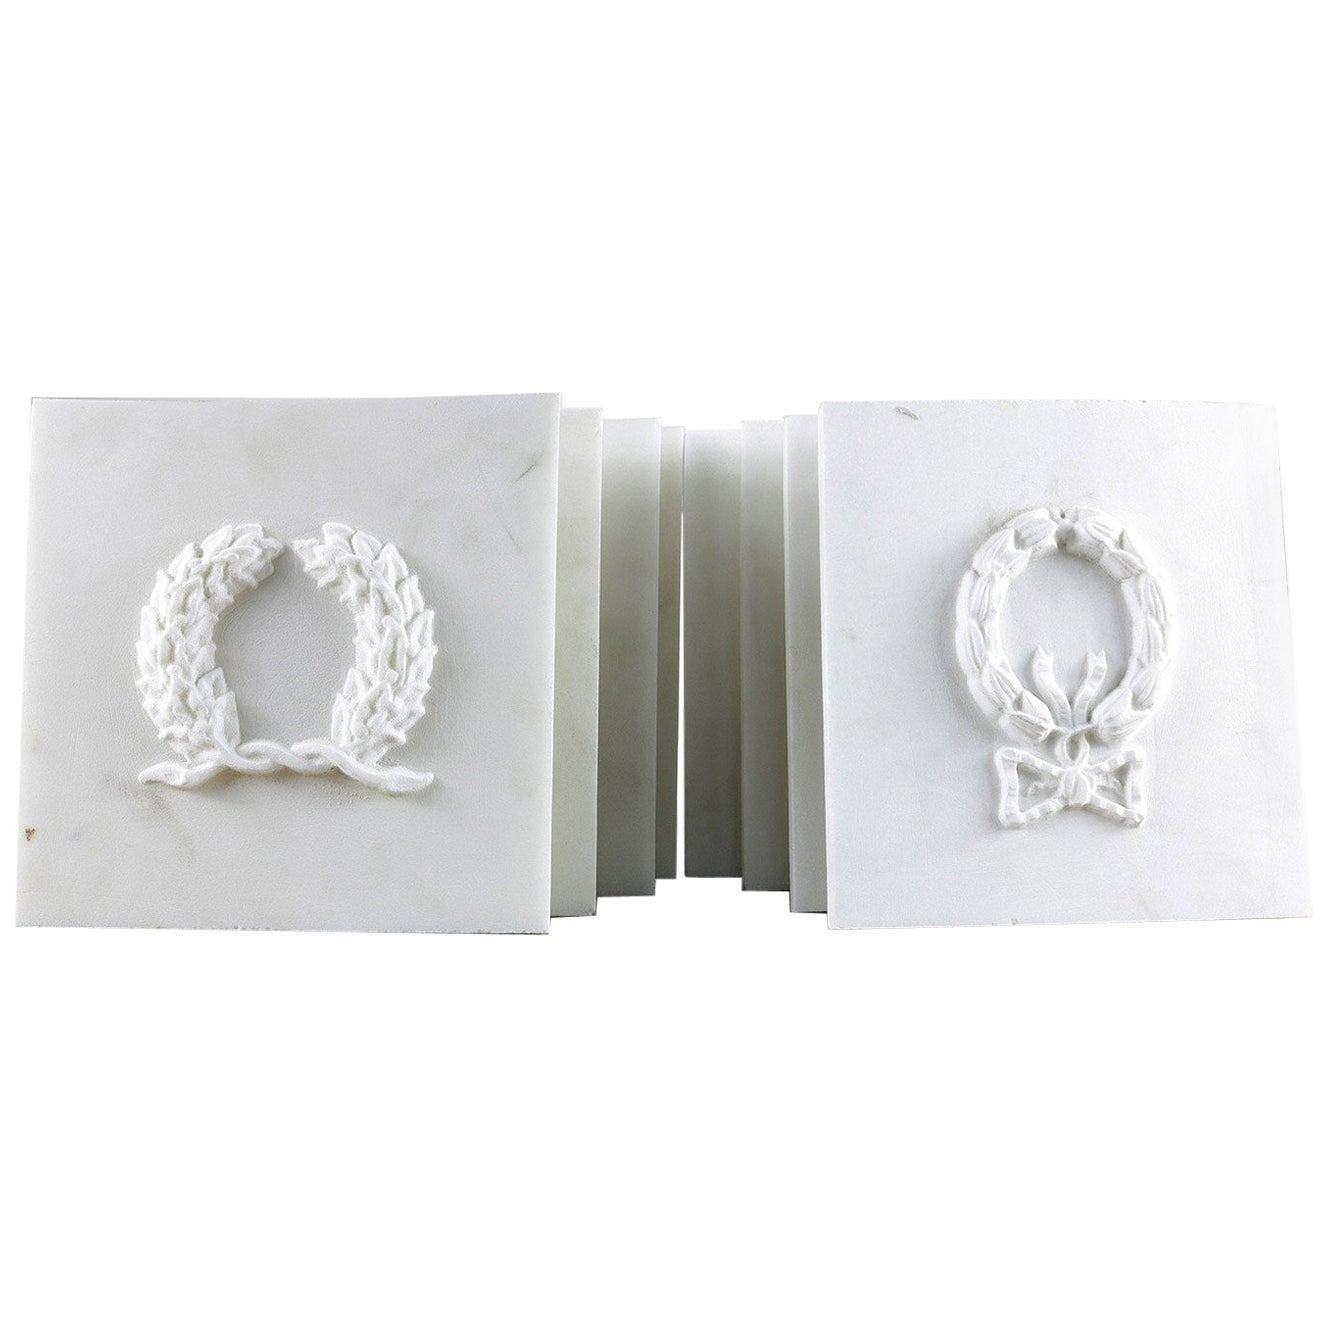 Reclaimed Marble Carved Wreath Plaques, 20th Century